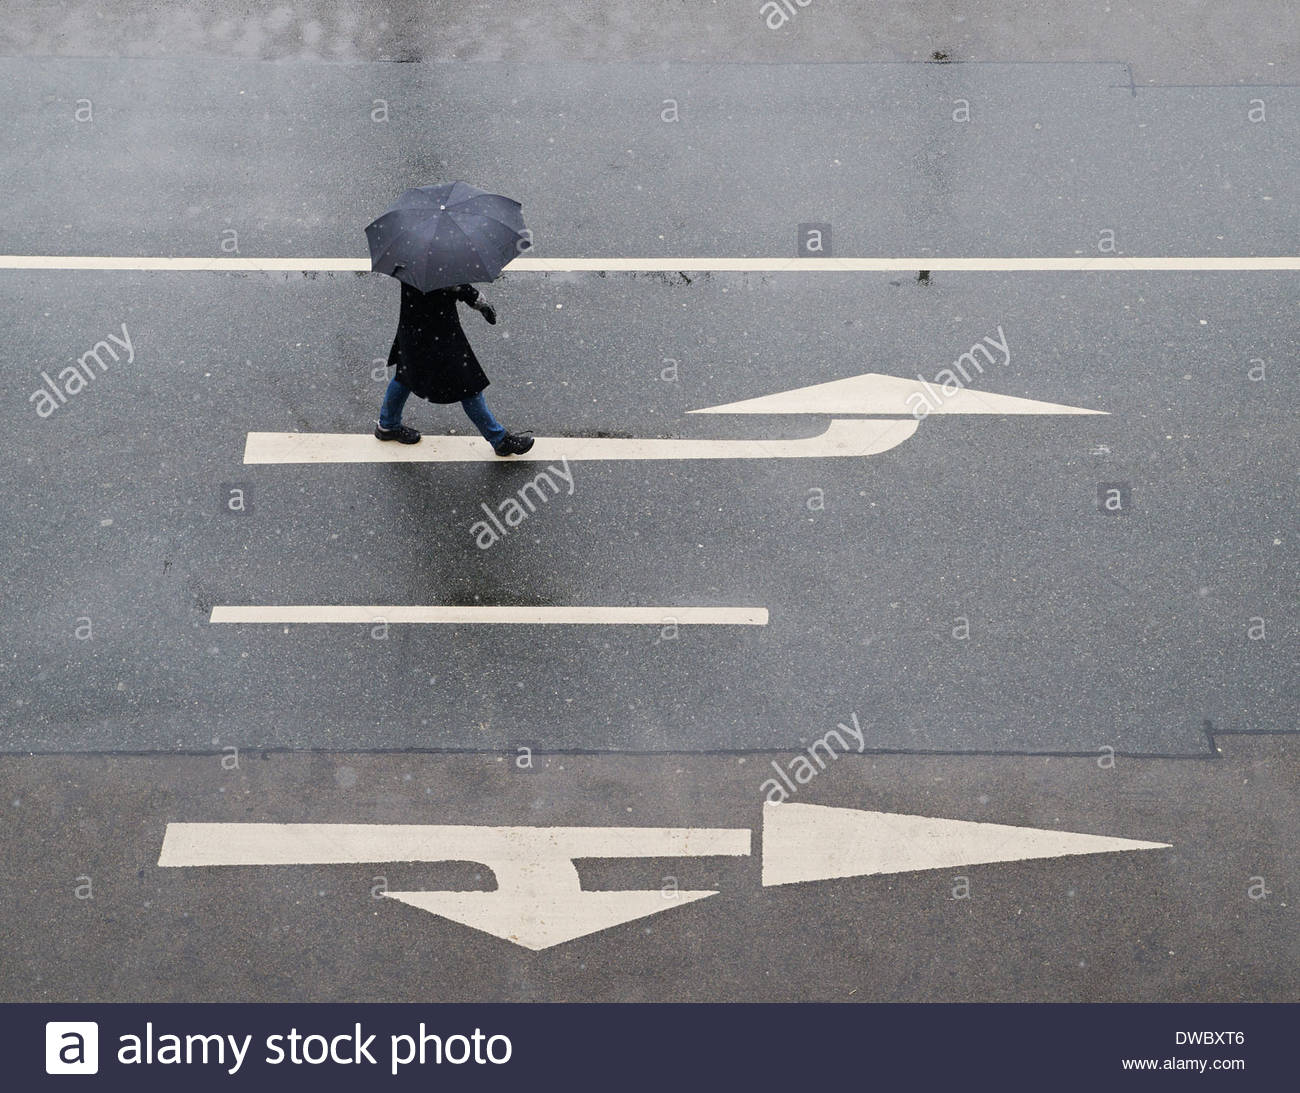 High angle view of woman with umbrella walking on road Photo Stock